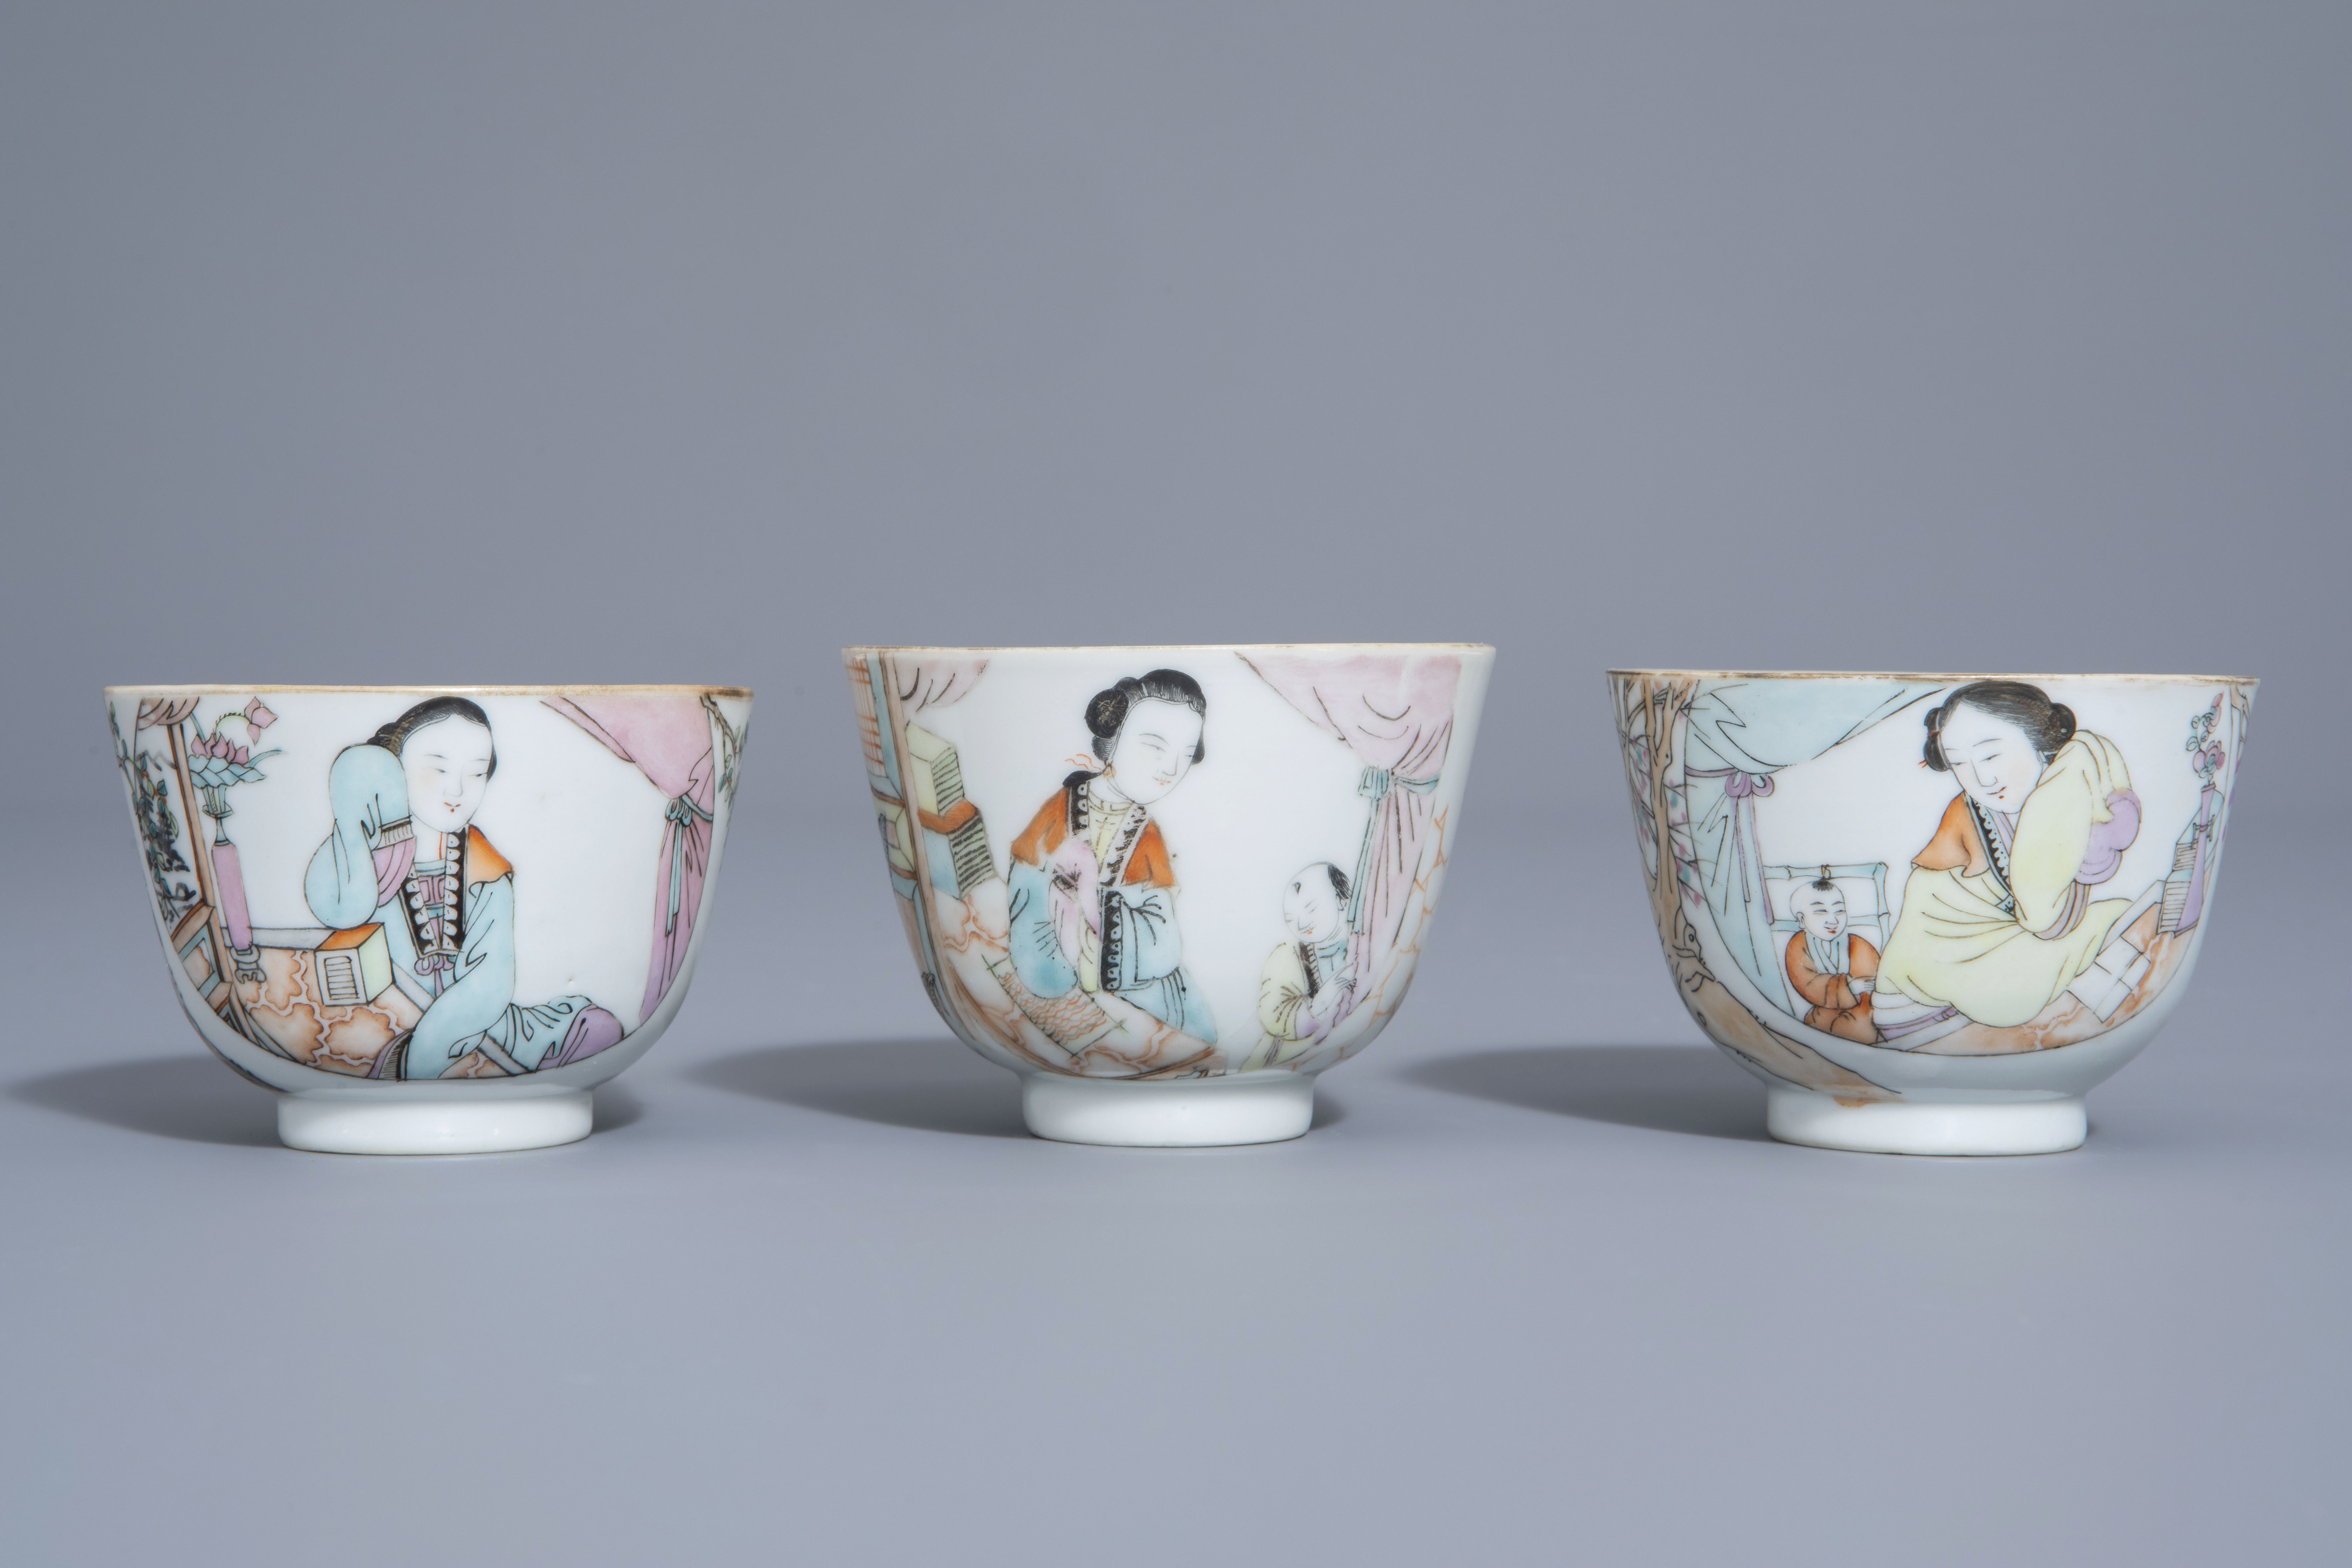 A Chinese seven-piece qianjiang cai tea service with figurative design, 19th/20th C. - Image 14 of 19